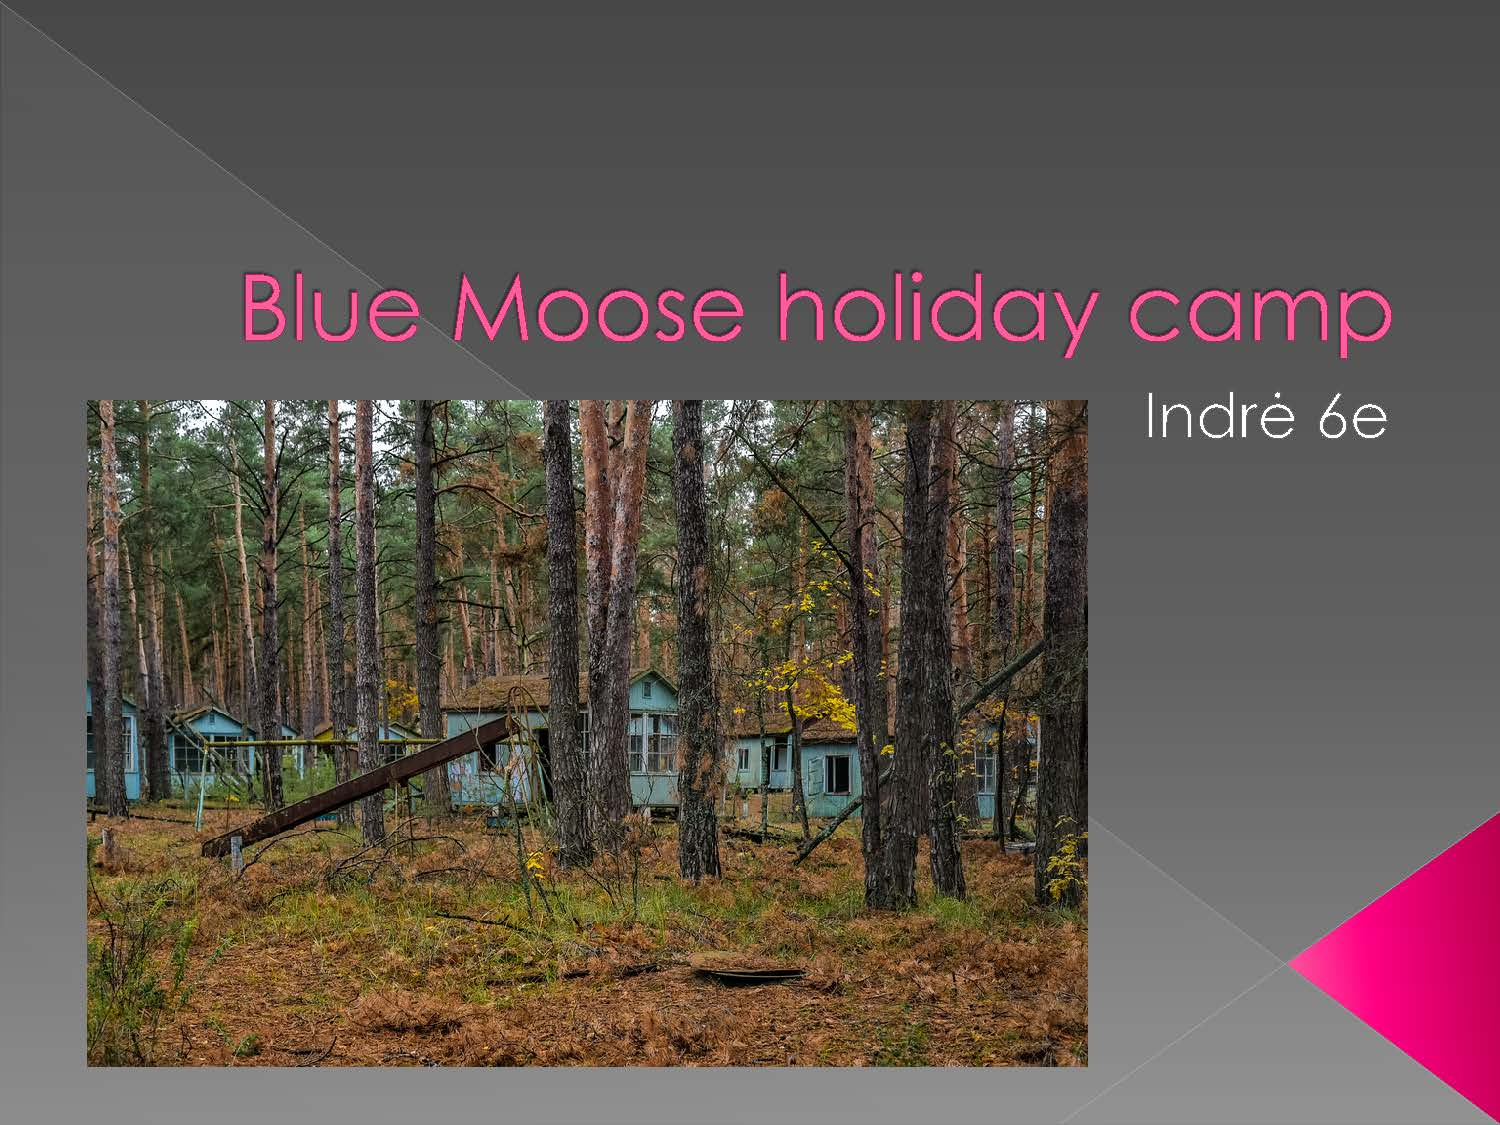 Indre-k-6e-Blue-Moose-holiday-camp_Page_1